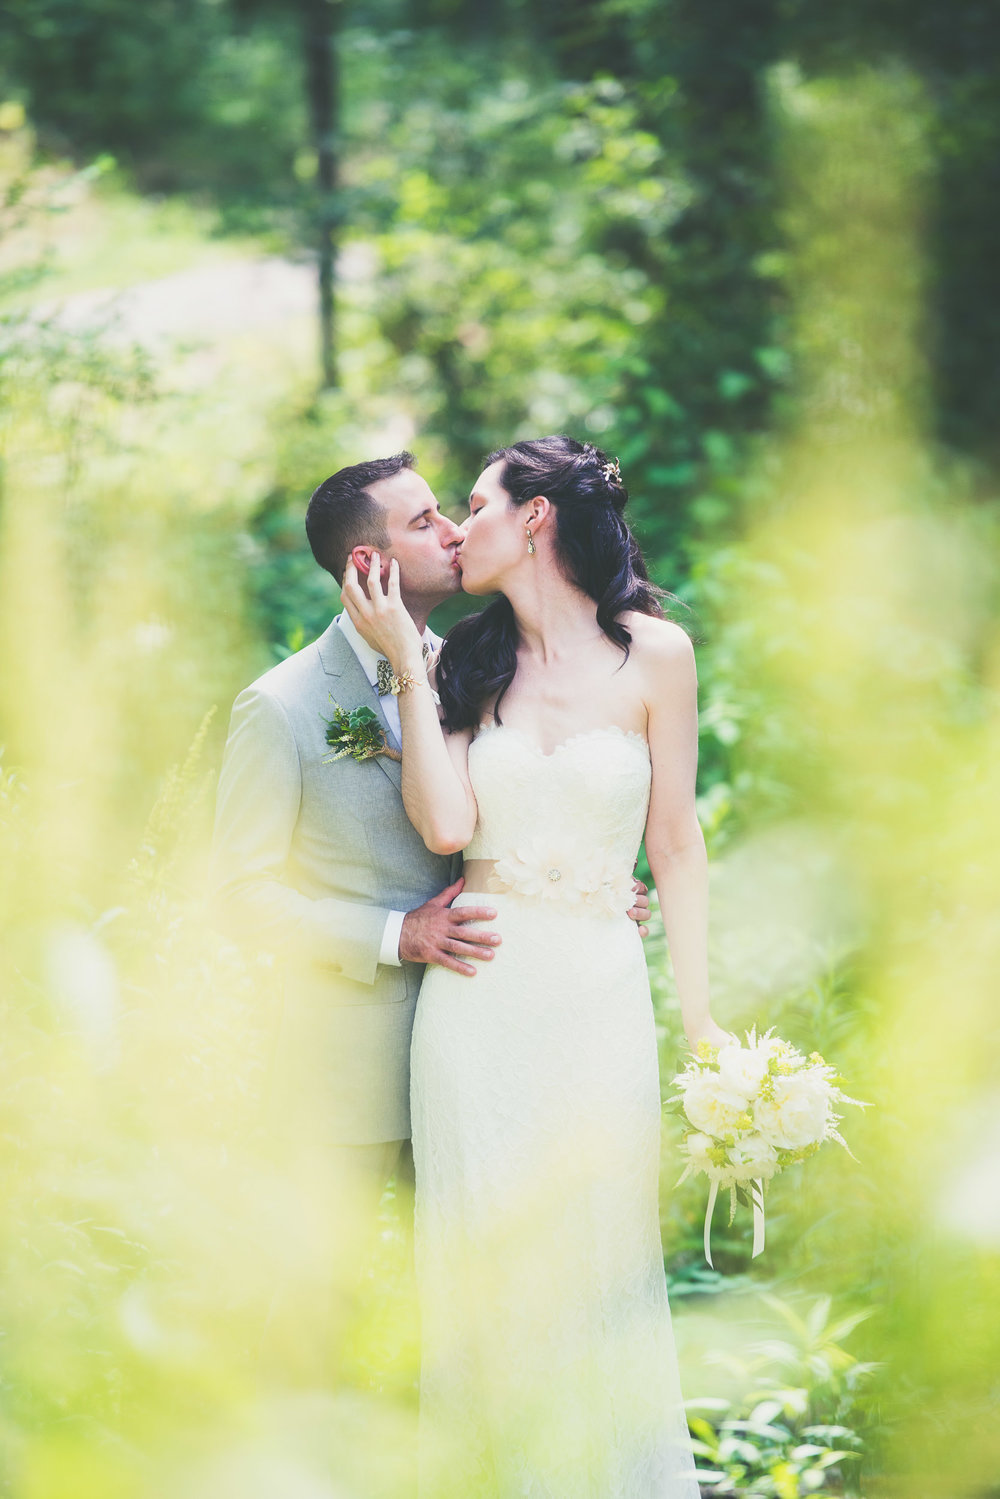 Kissing through grass - Weddings - Photo credit Nicola Bailey.jpg